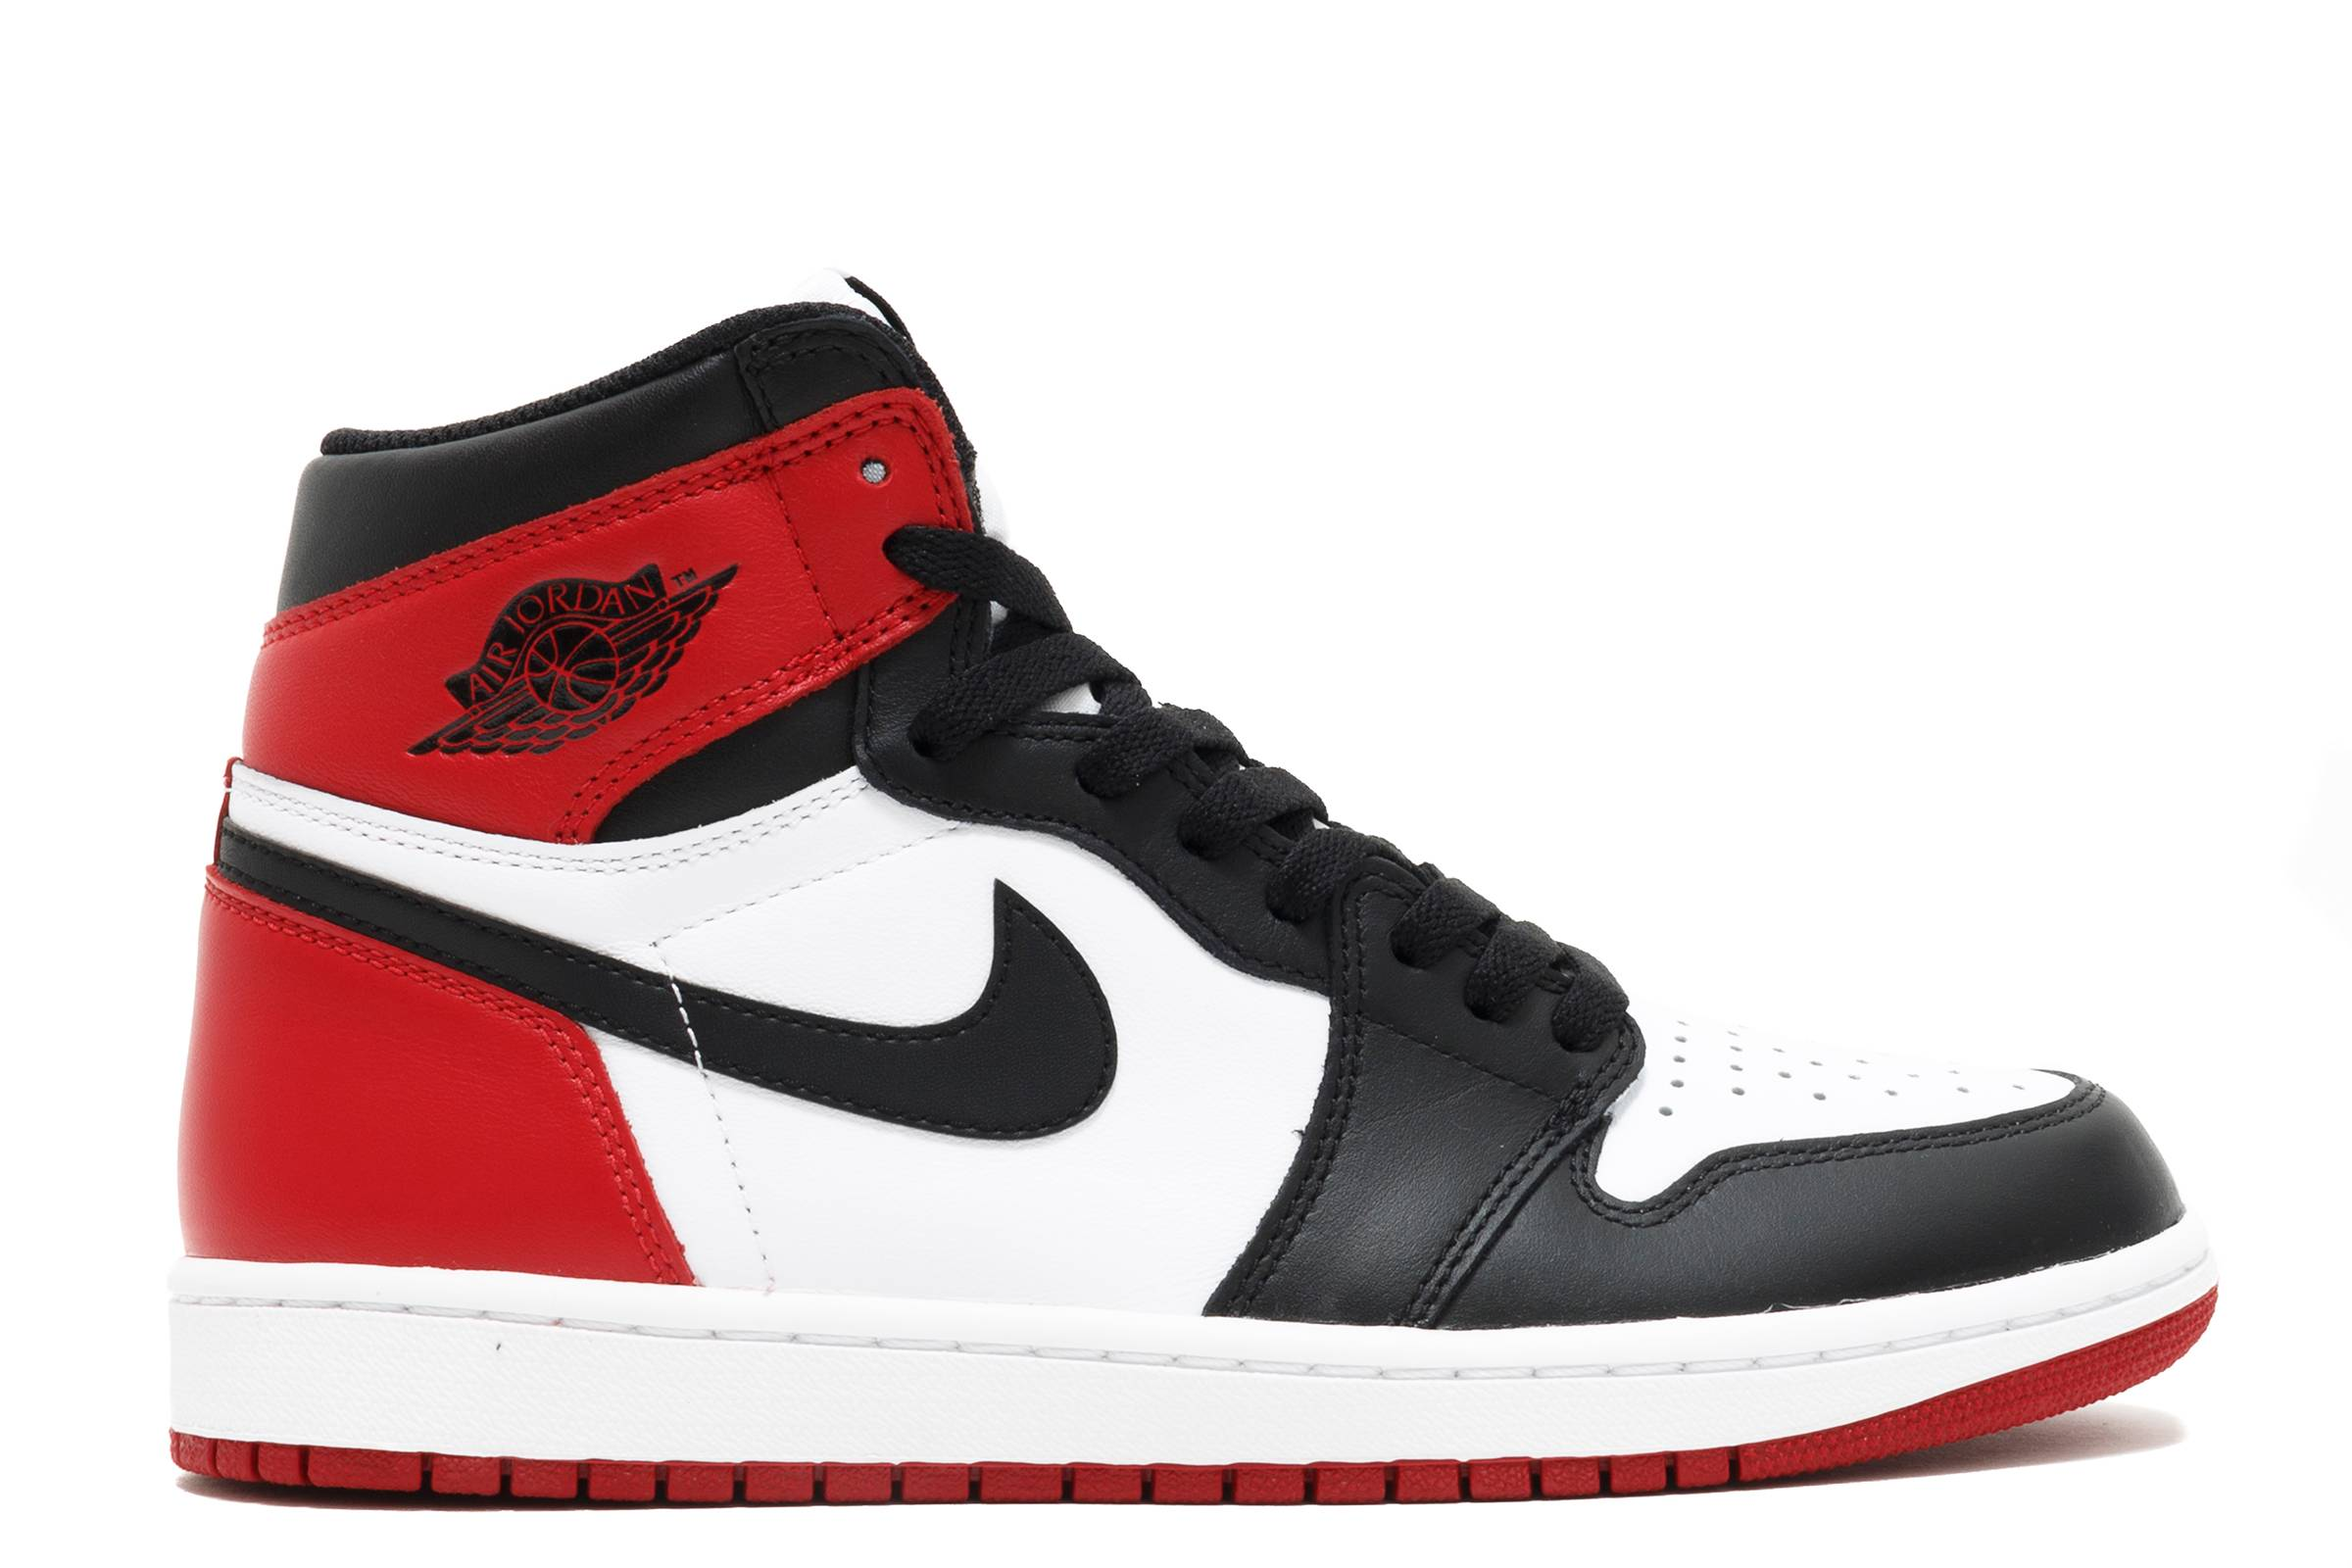 the best attitude 1035e 8d388 Jordan 1 Black Toe